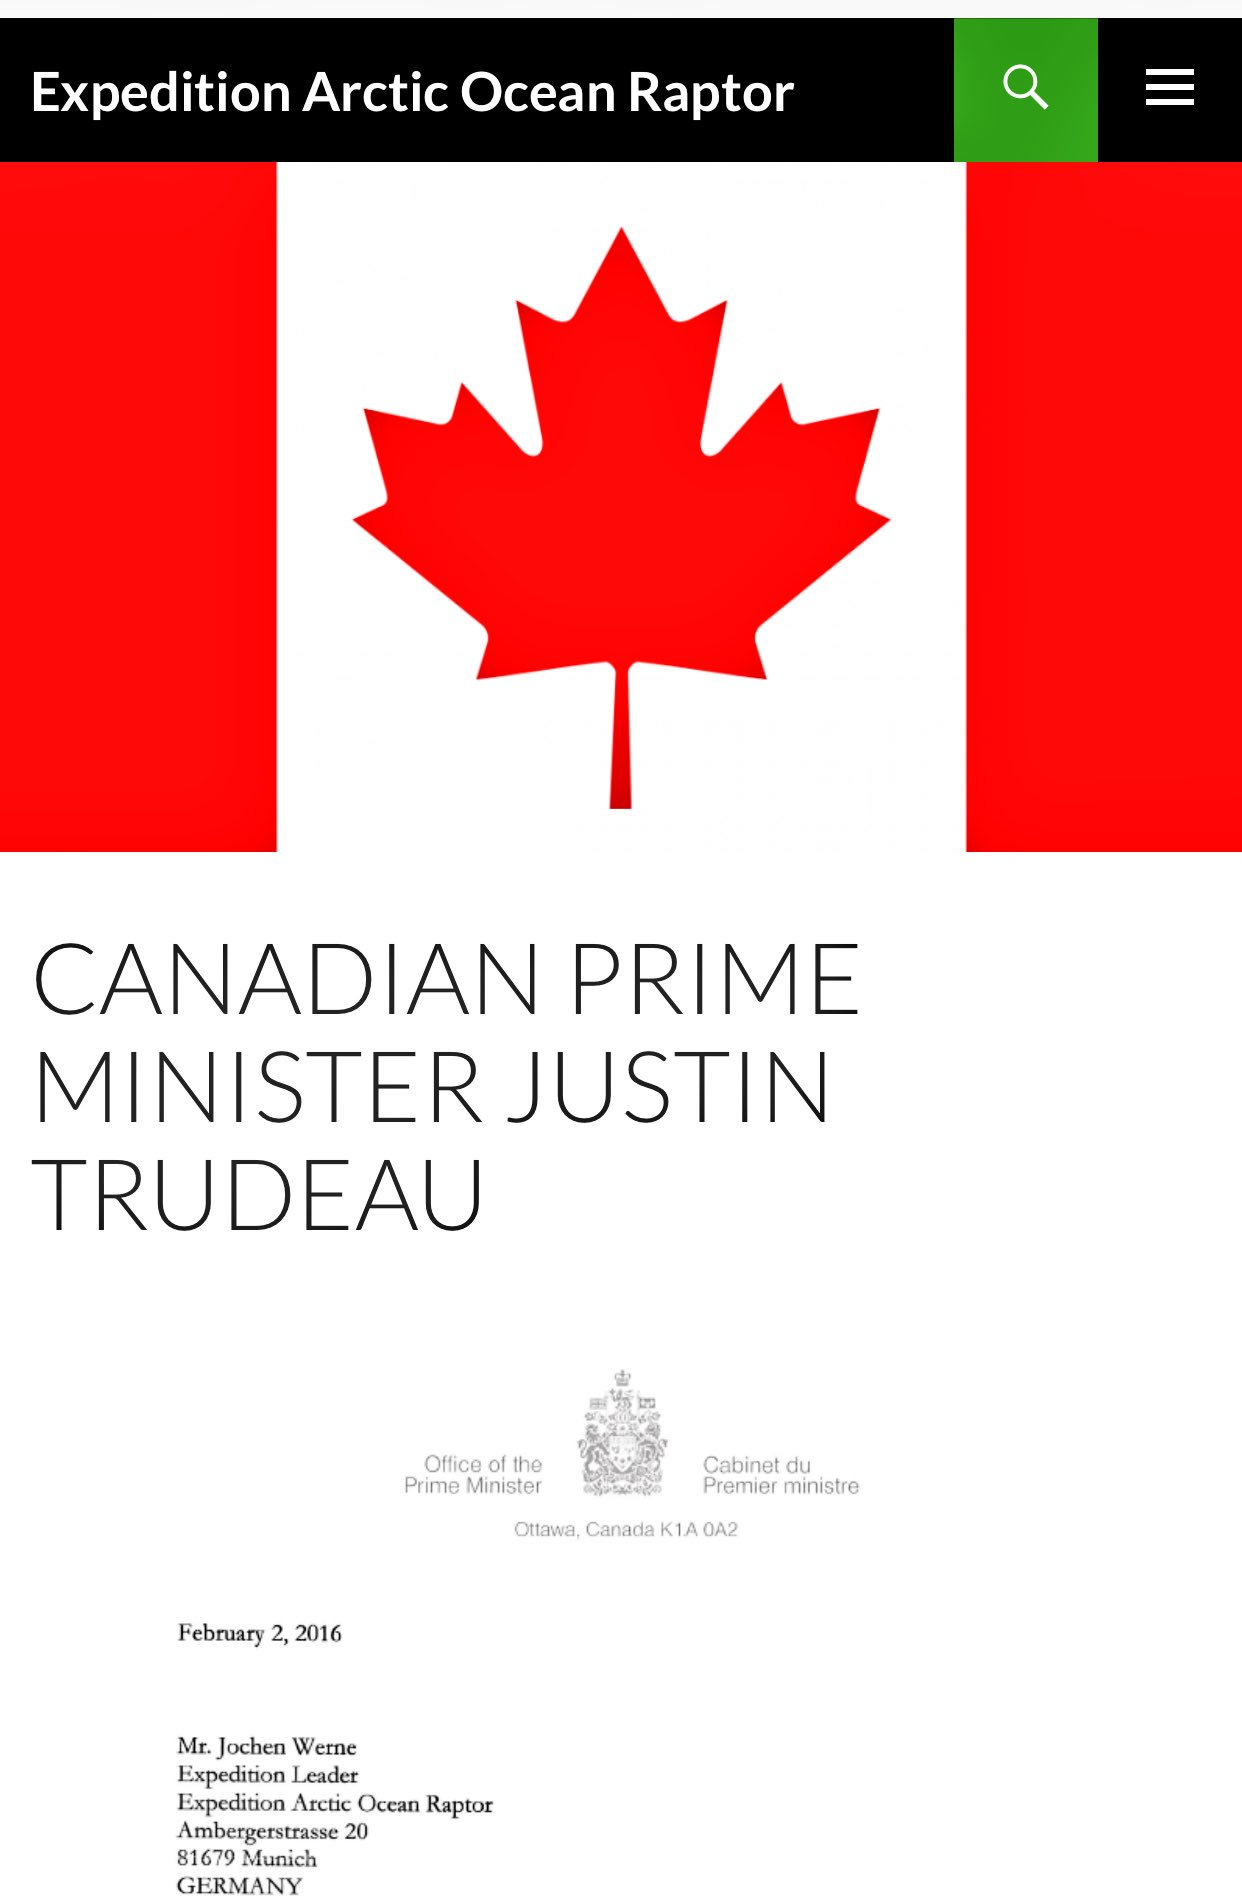 We are grateful for the wishes & support received from the Office of the Prime Minister of #Canada @JustinTrudeau https://t.co/YjXuBpjgTH